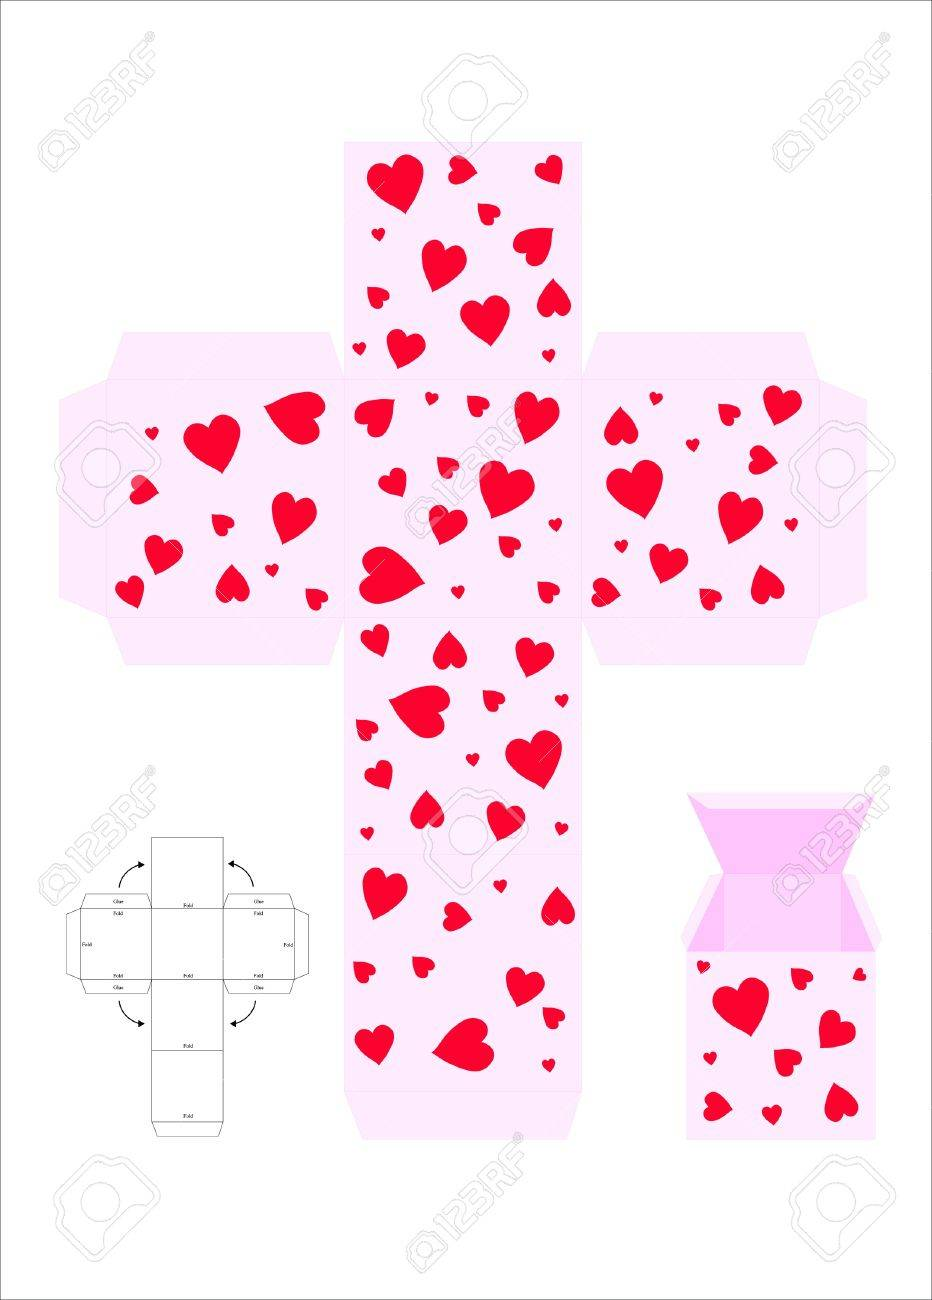 A Vector Illustration Template For Creating A Valentine Gift – Template for Gift Boxes